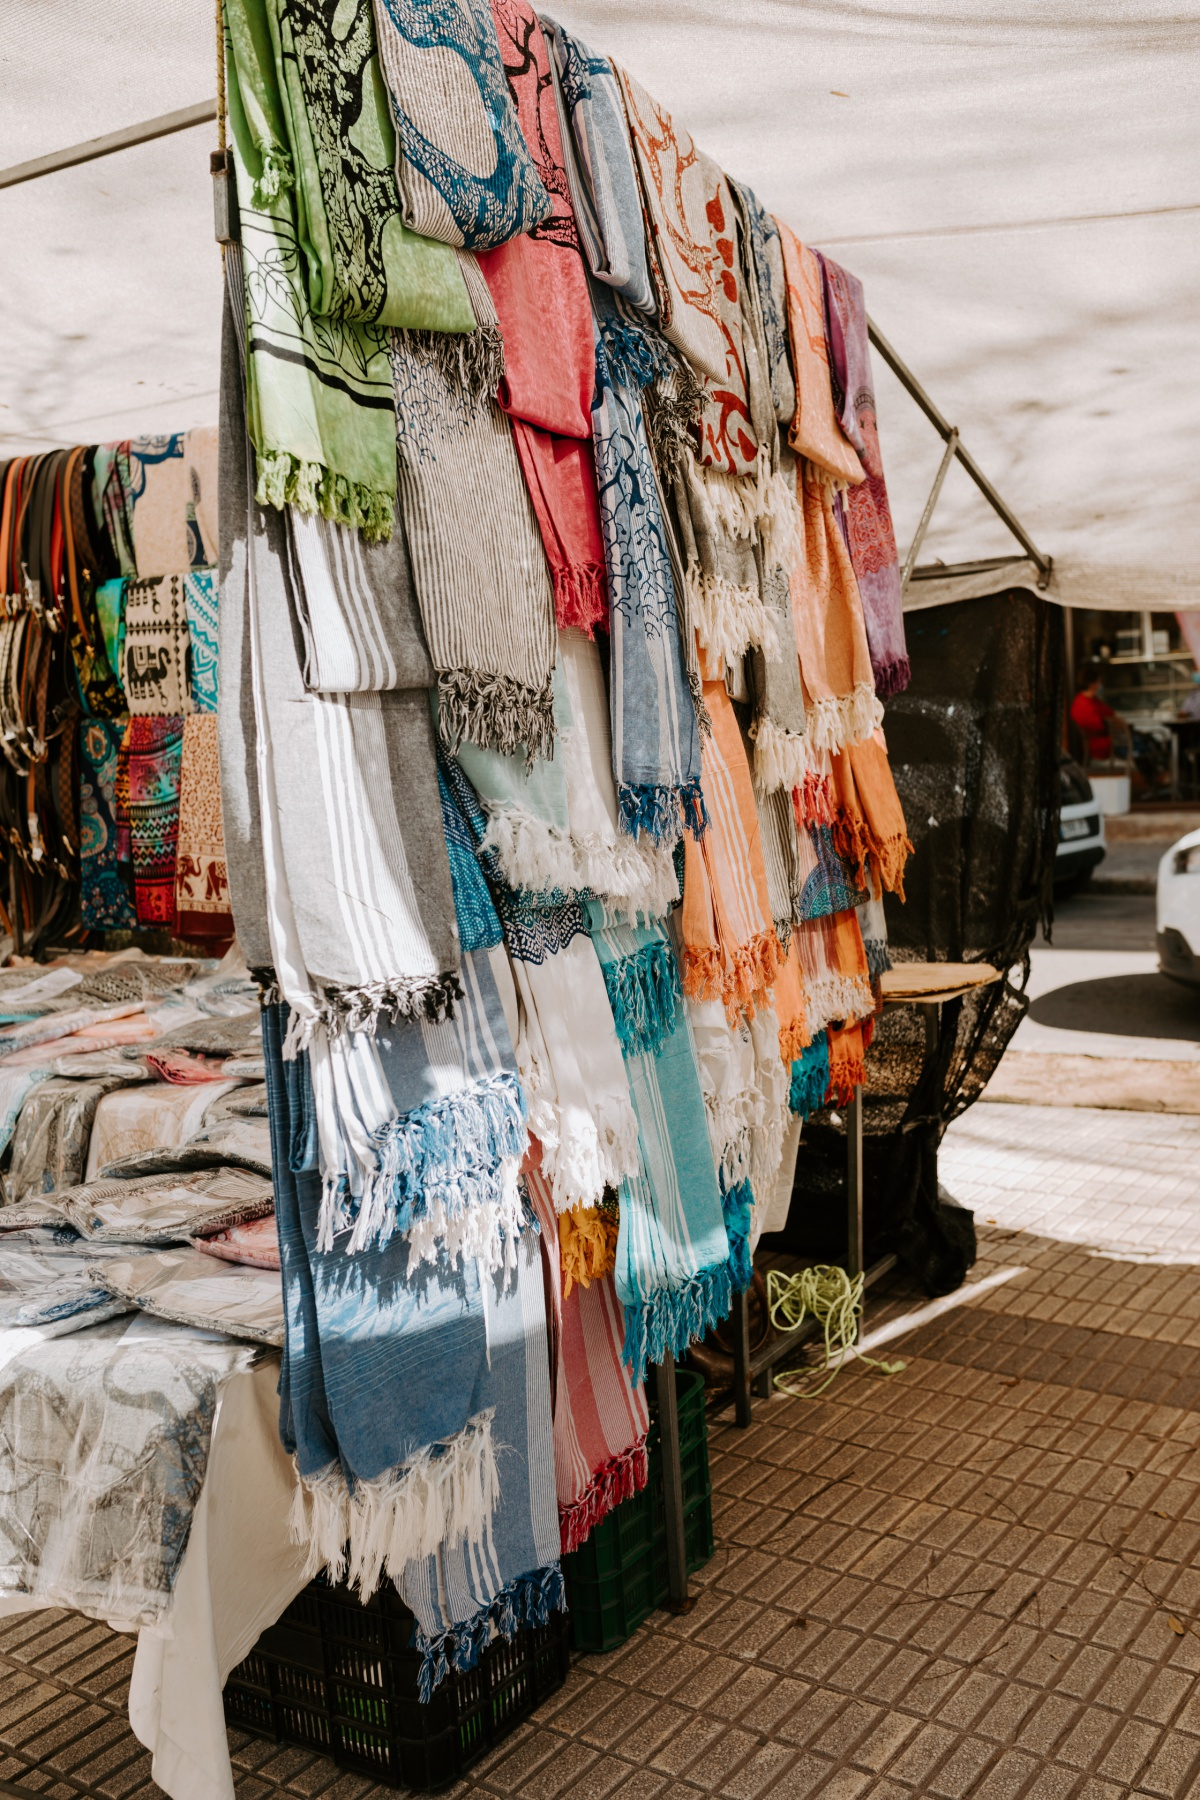 textile gifts to shop at the Inca Market in Mallorca Spain